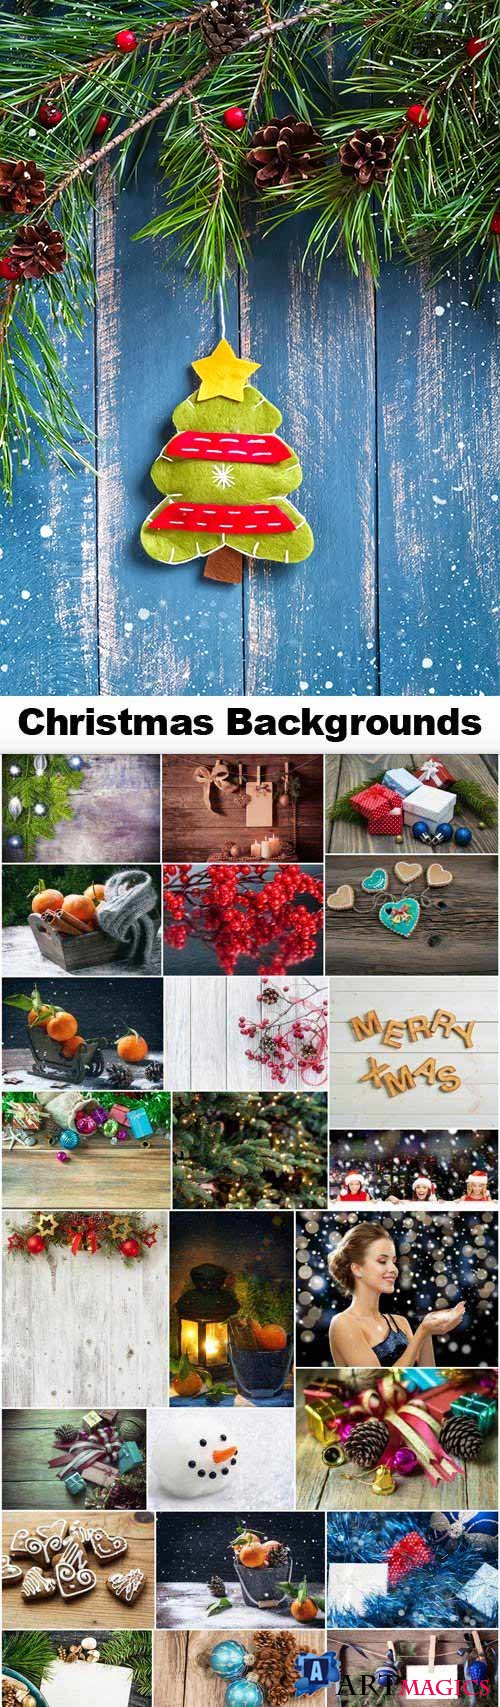 Merry Christmas Backgrounds 25xJPG